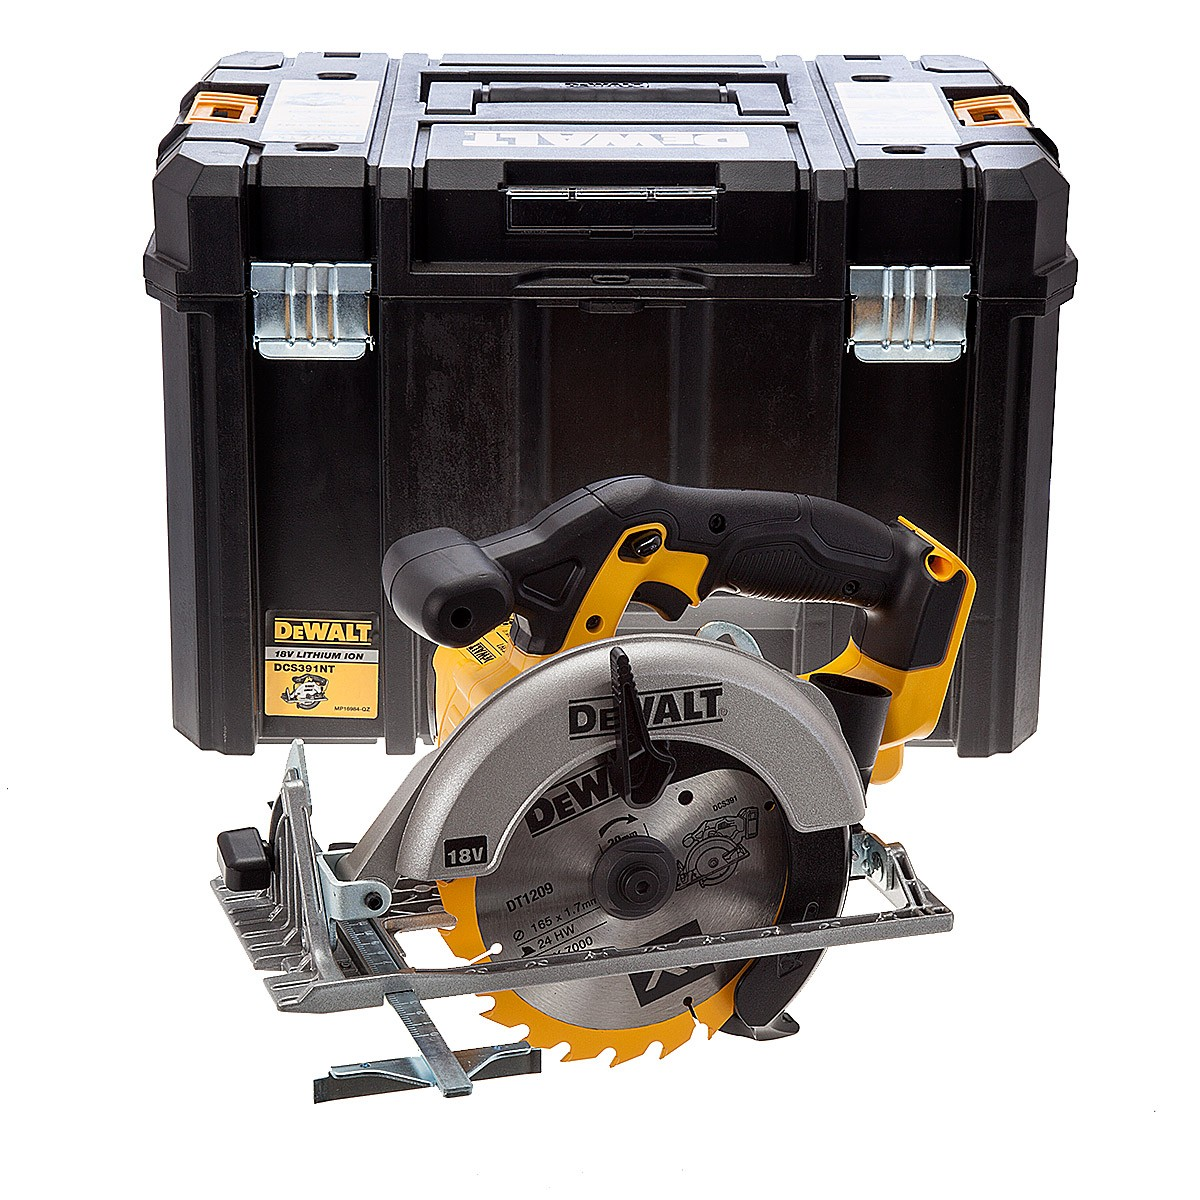 DeWalt DCS391NT XR 165mm Circular Saw Body Only in TSTAK VI Case